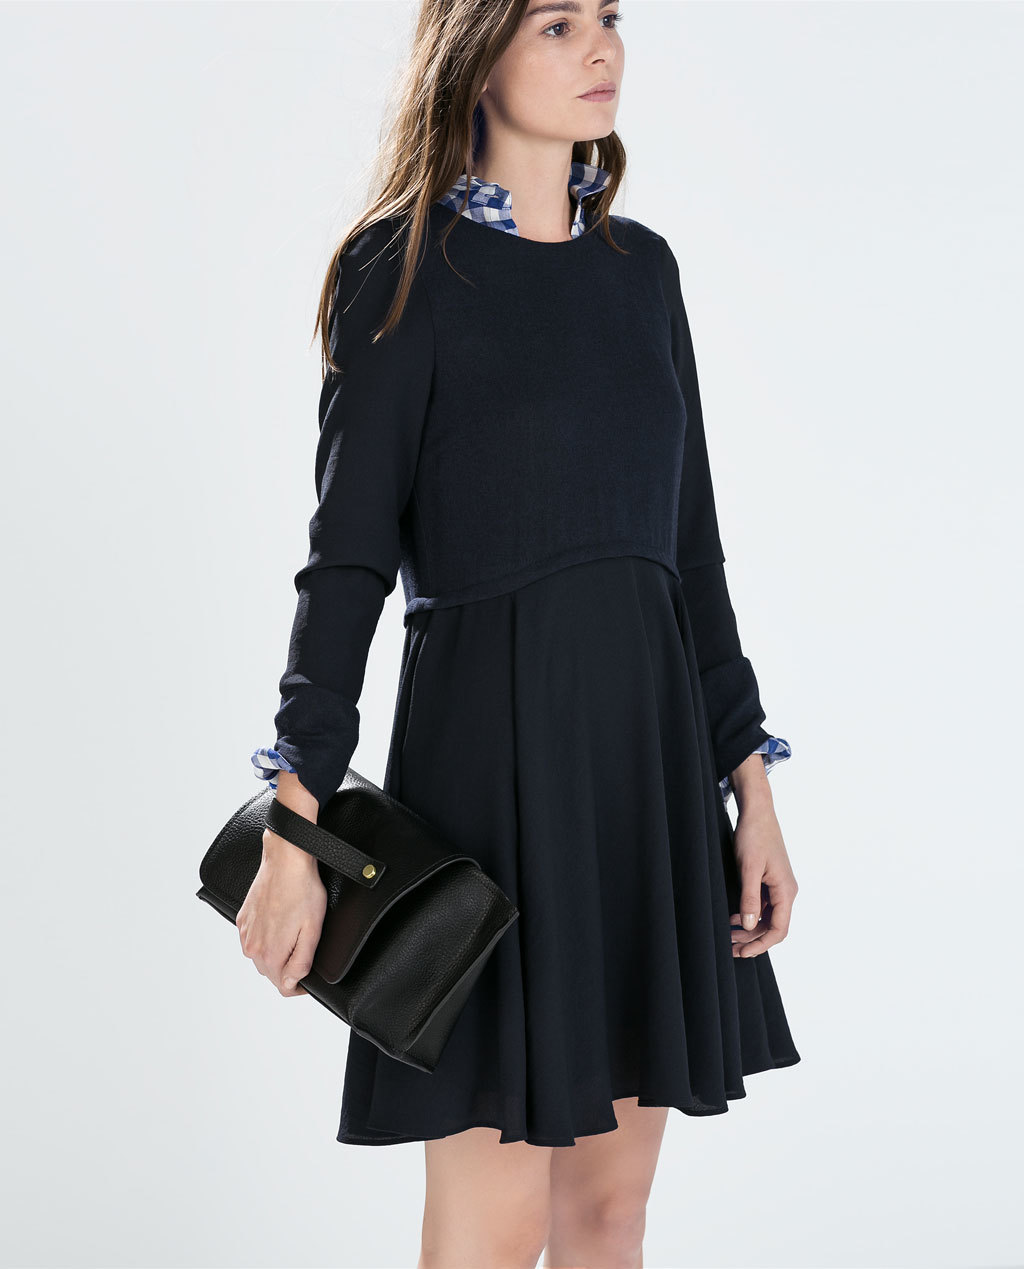 Long Sleeved Flared Dress - length: mid thigh; fit: loose; pattern: plain; predominant colour: navy; occasions: casual, creative work; style: fit & flare; neckline: crew; hip detail: subtle/flattering hip detail; sleeve length: long sleeve; sleeve style: standard; pattern type: fabric; texture group: woven light midweight; season: a/w 2014